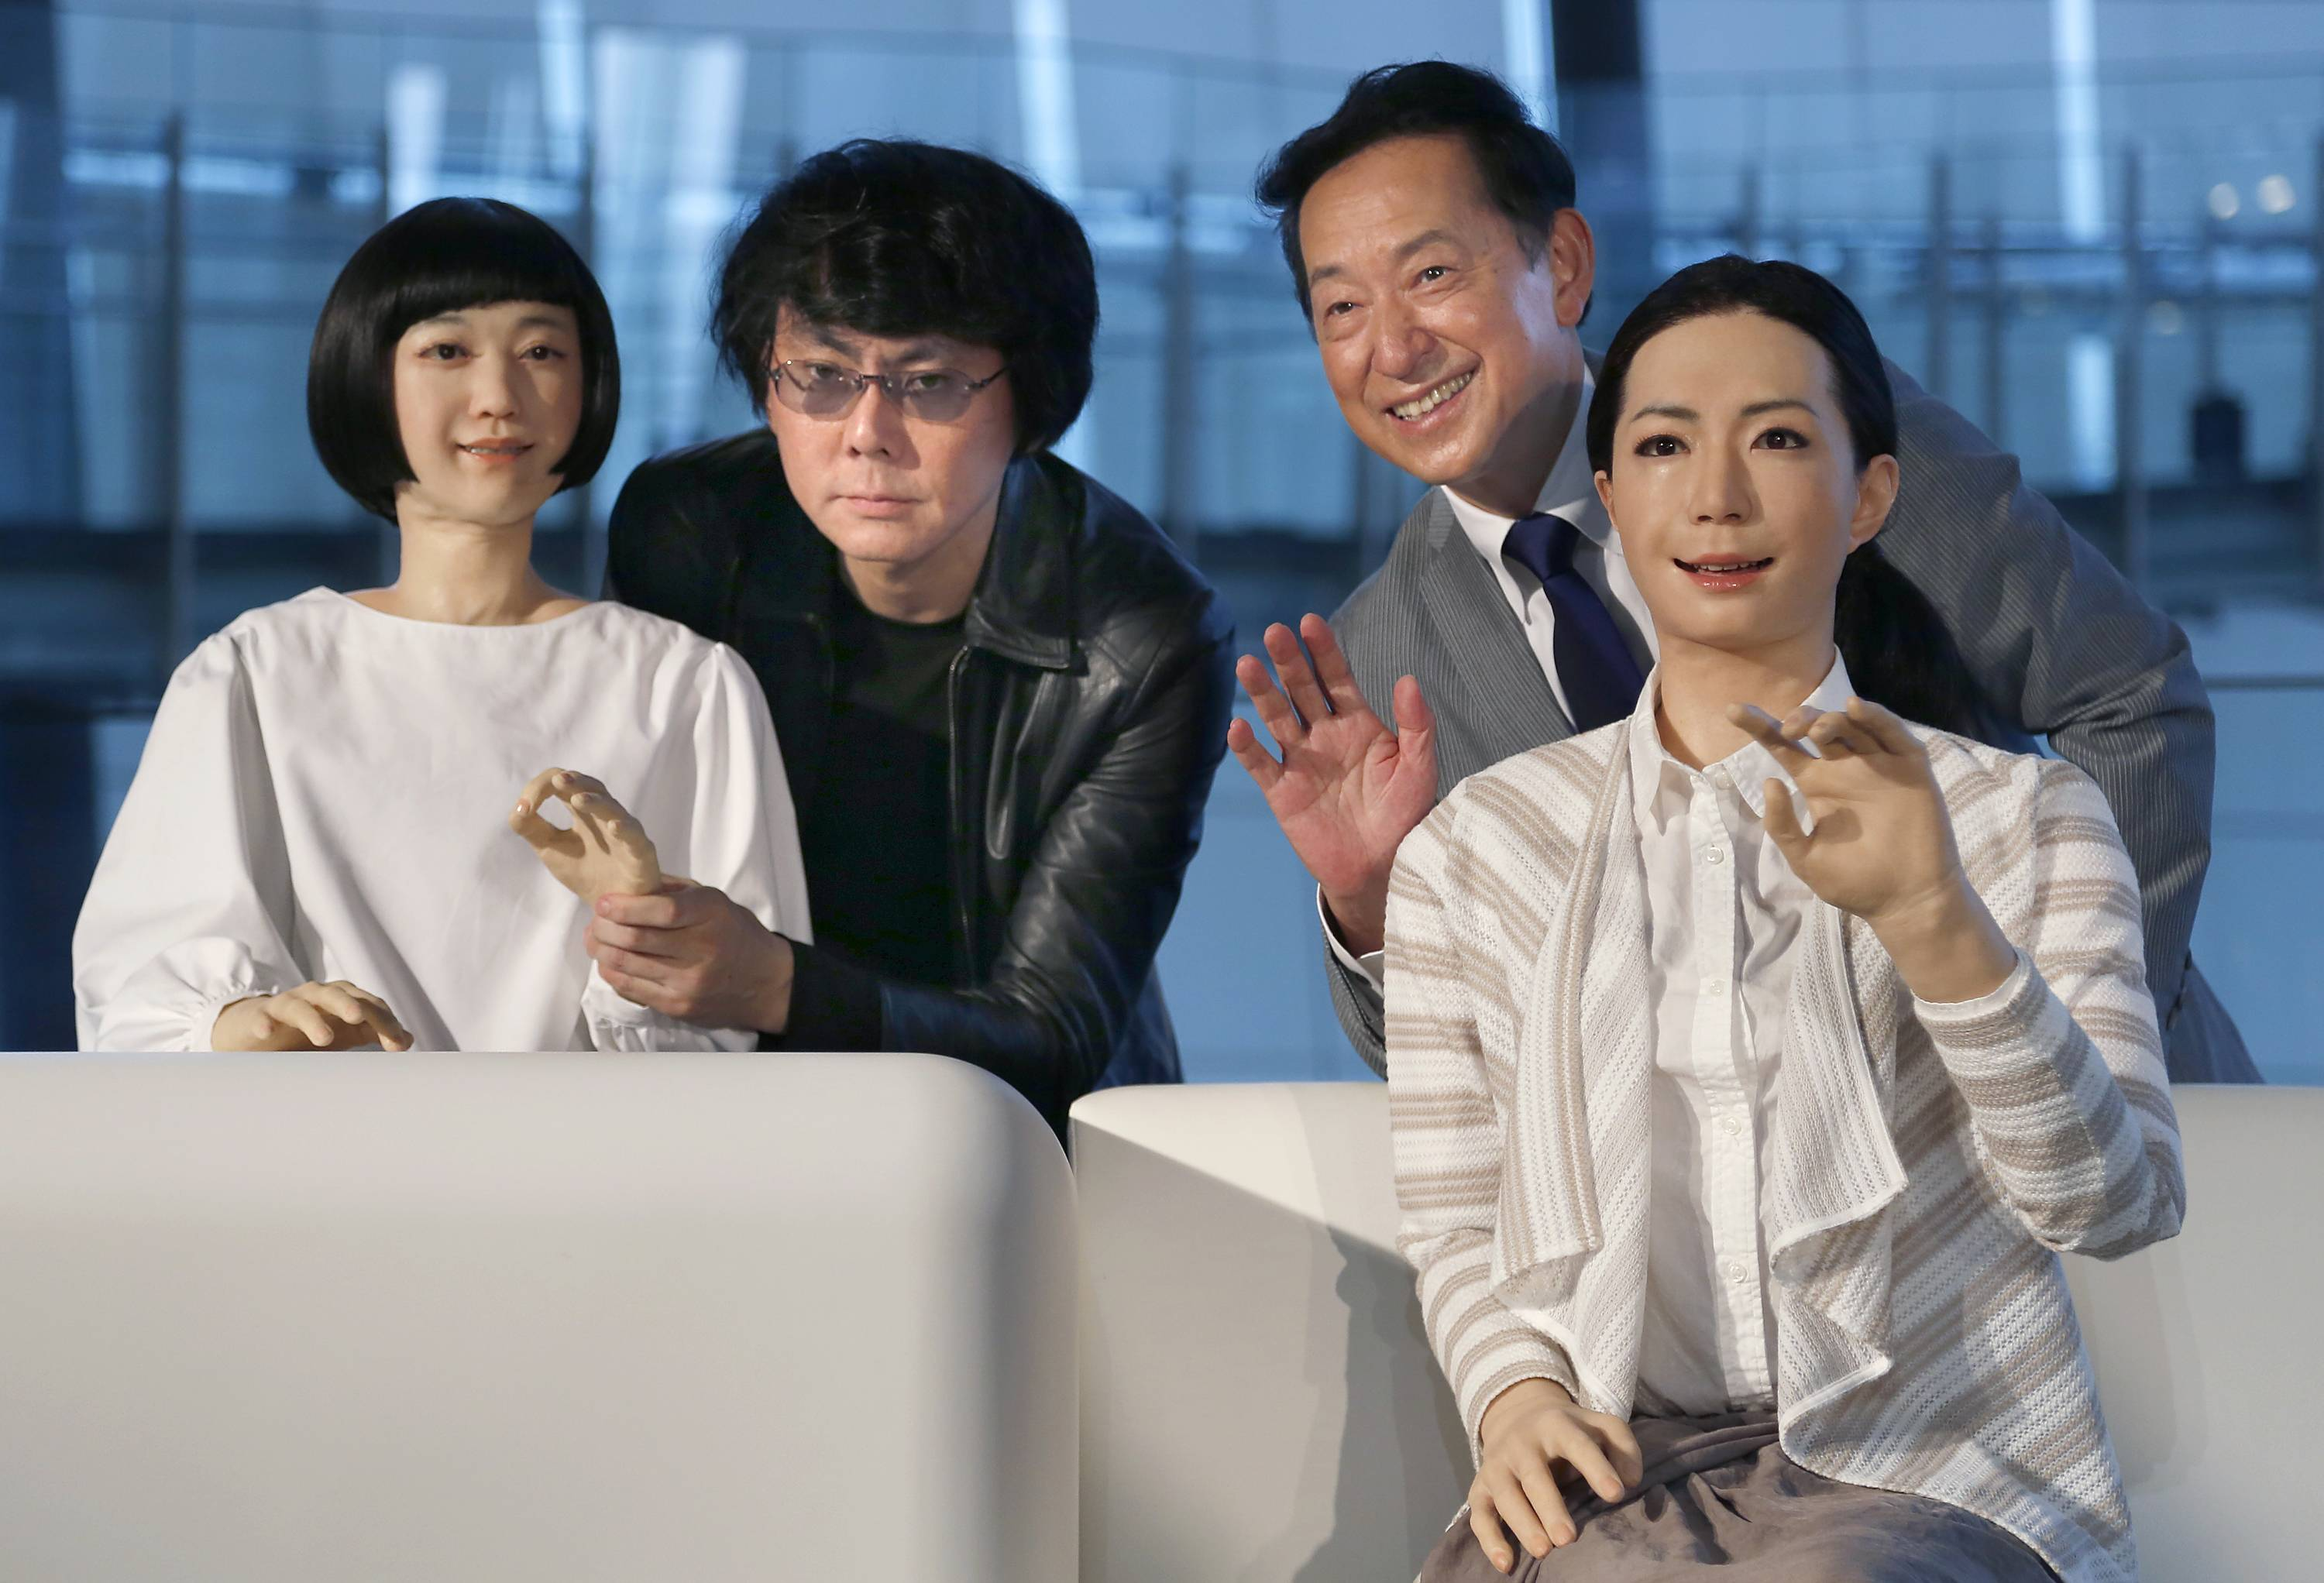 Japanese android expert Hiroshi Ishiguro, second left, and National Museum of Emerging Science and Innovation Miraikan Chief Executive Director Mamoru Mohri, second right, pose with a female-announcer robot called Otonaroid, right, and a girl robot called Kodomoroid during a demonstration of the museum's new guides in Tokyo Tuesday.